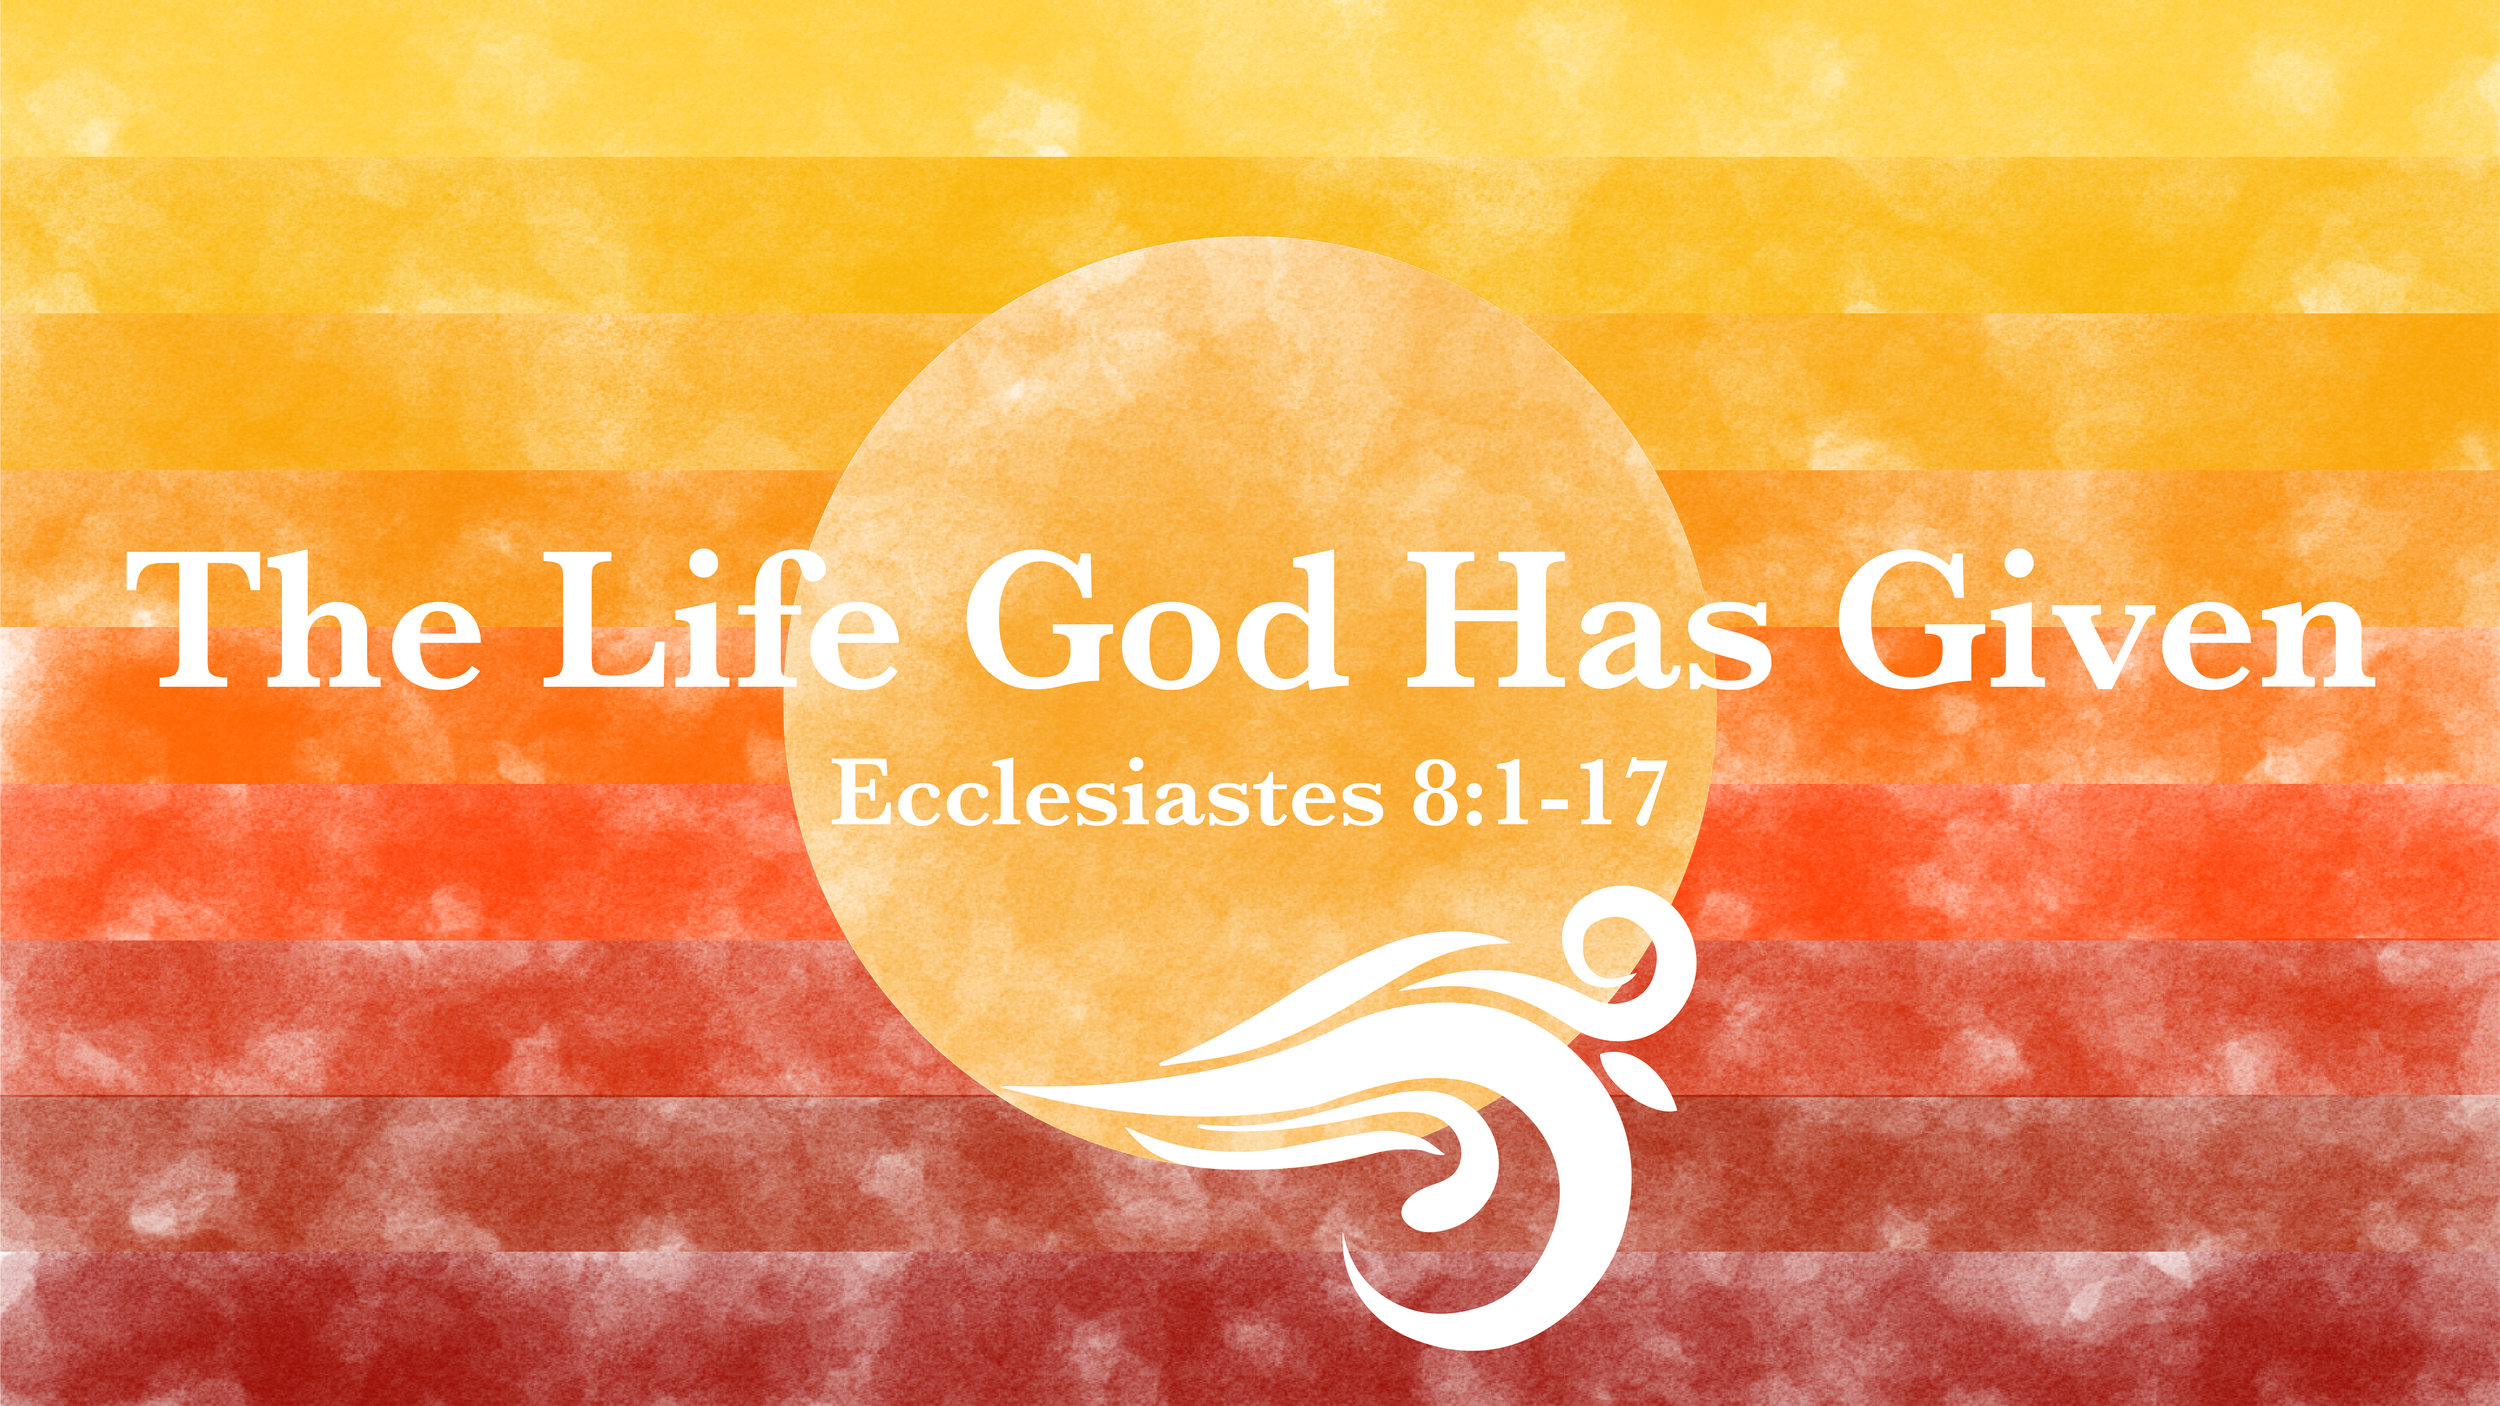 The Life God has Given-06.jpg